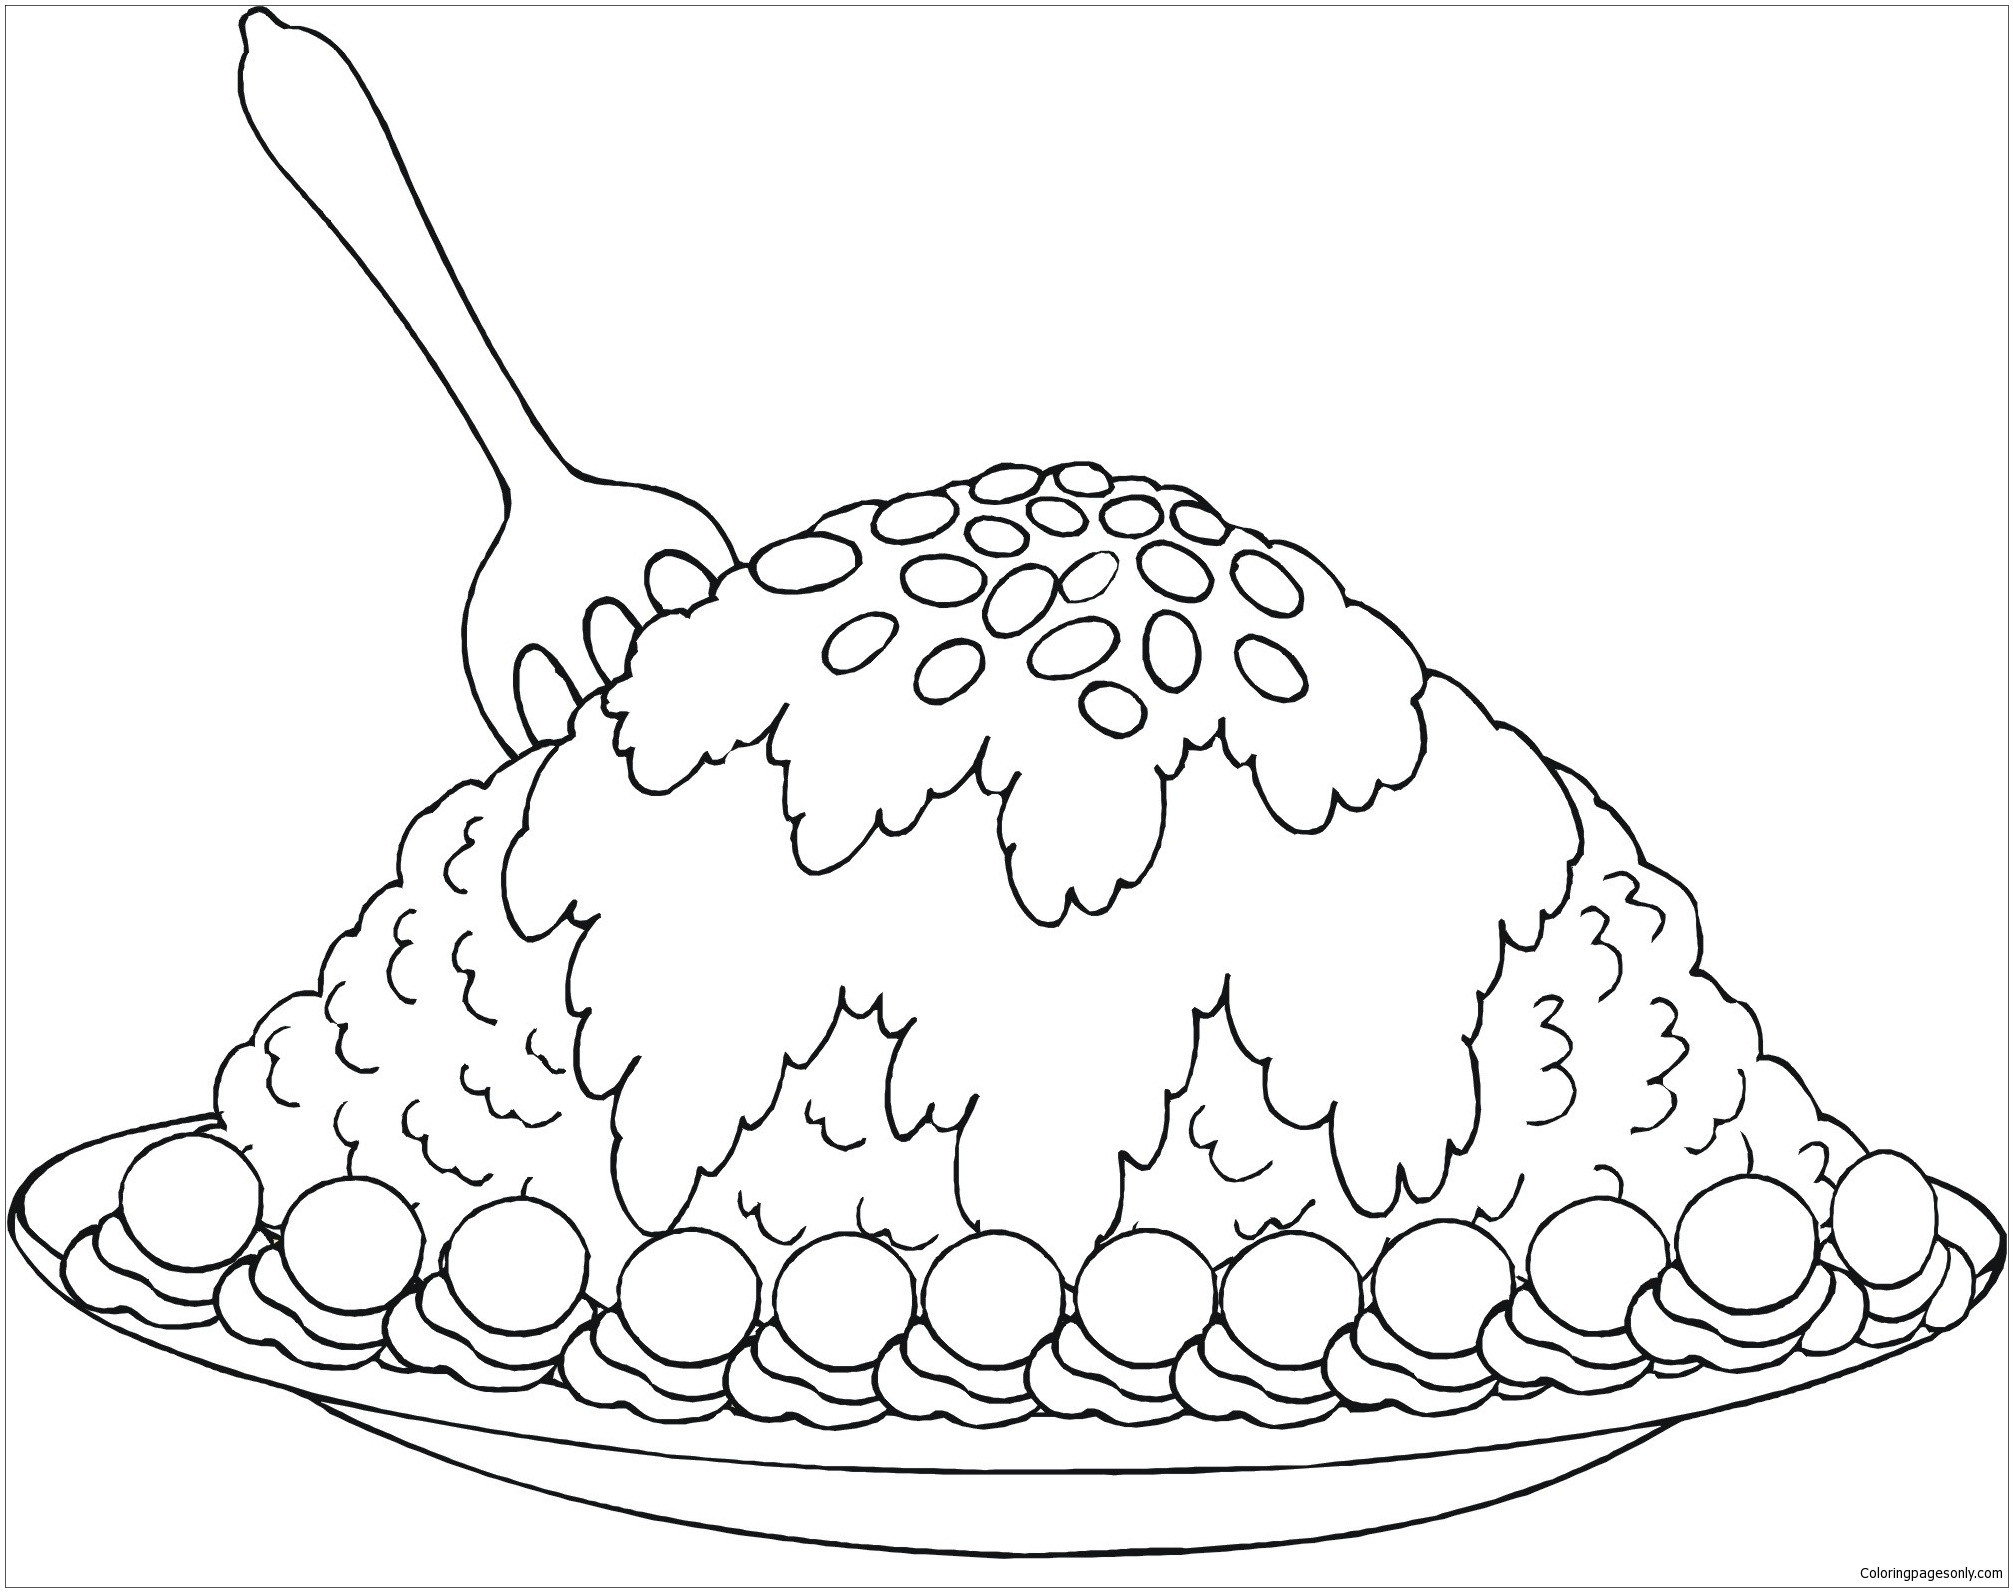 New Fabulous Dessert Coloring Page Free Coloring Pages Online